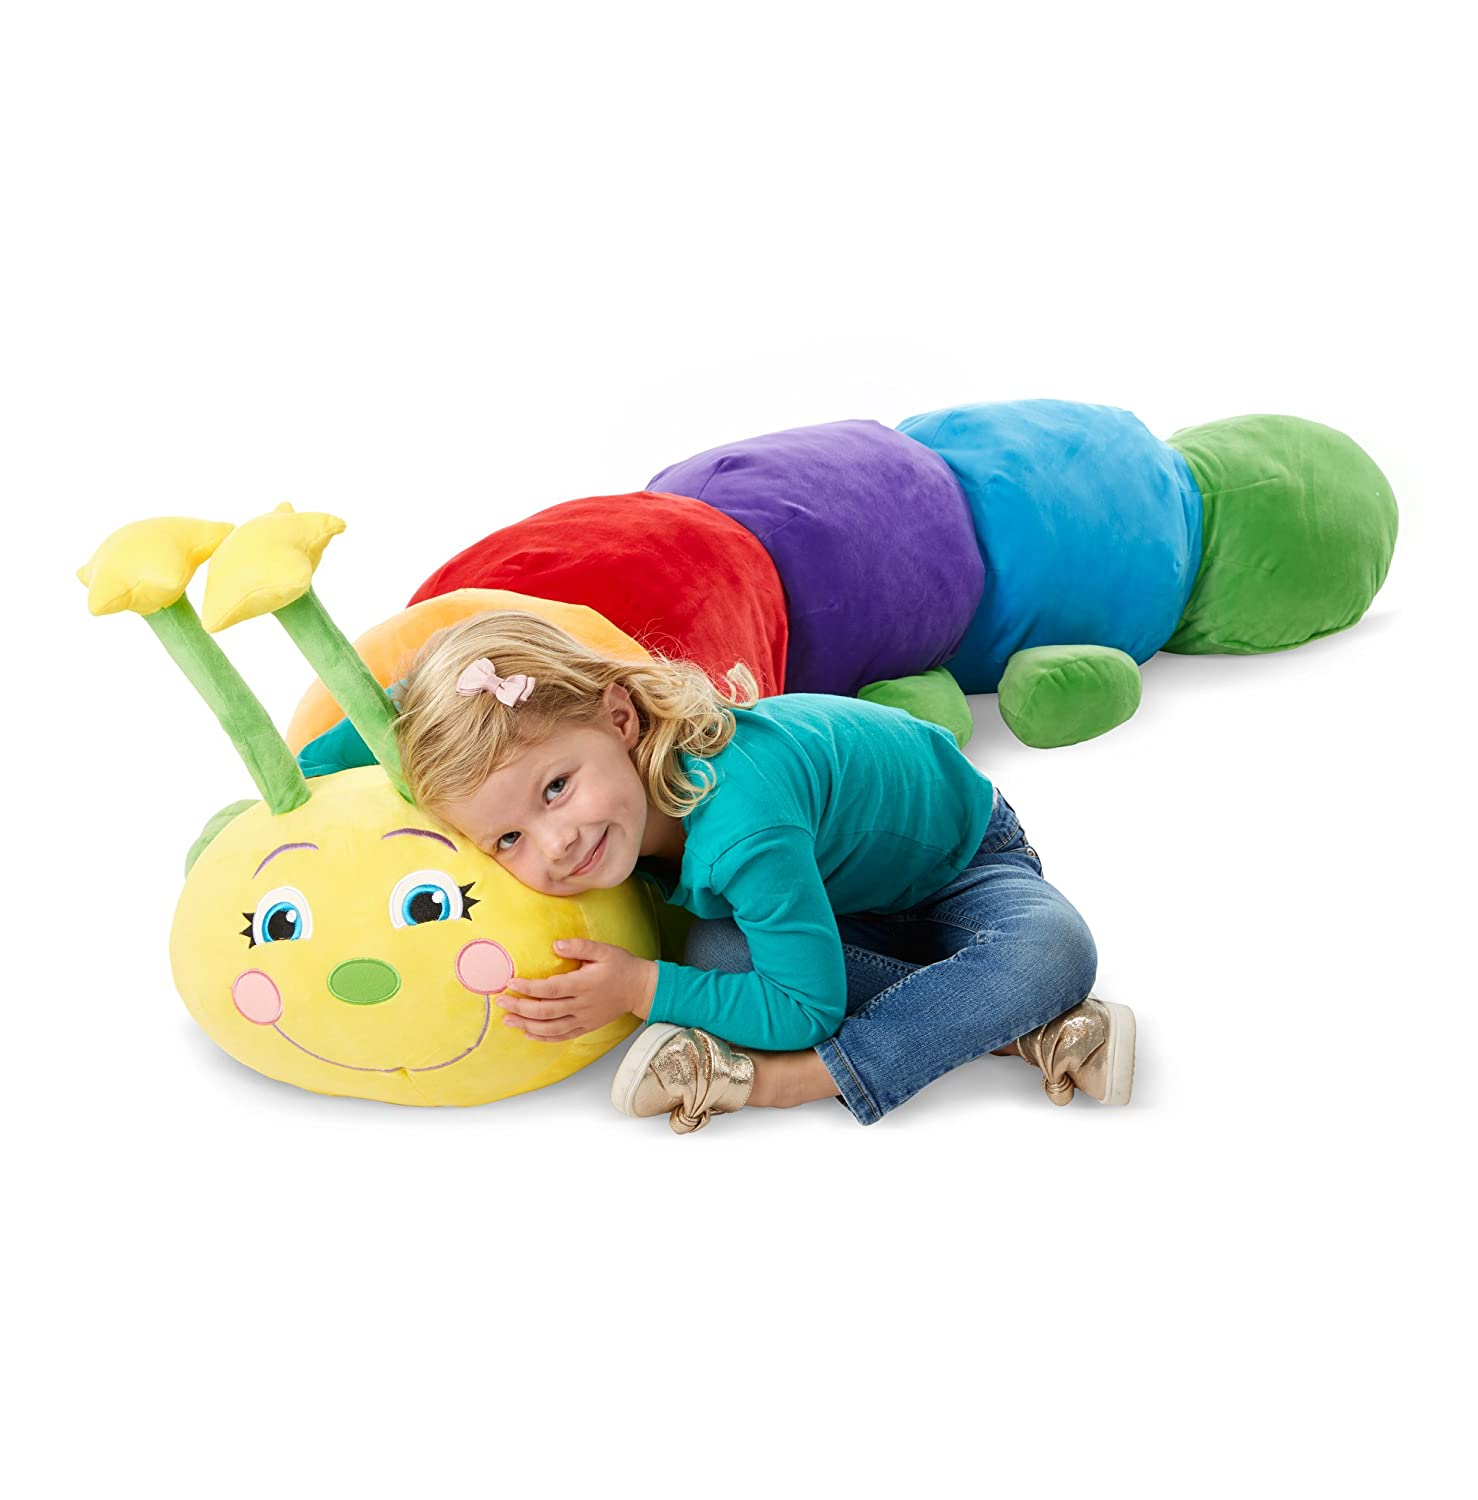 Melissa Doug Plush Jumbo Caterpillar Stuffed Animal 63W x 18H x 17D in